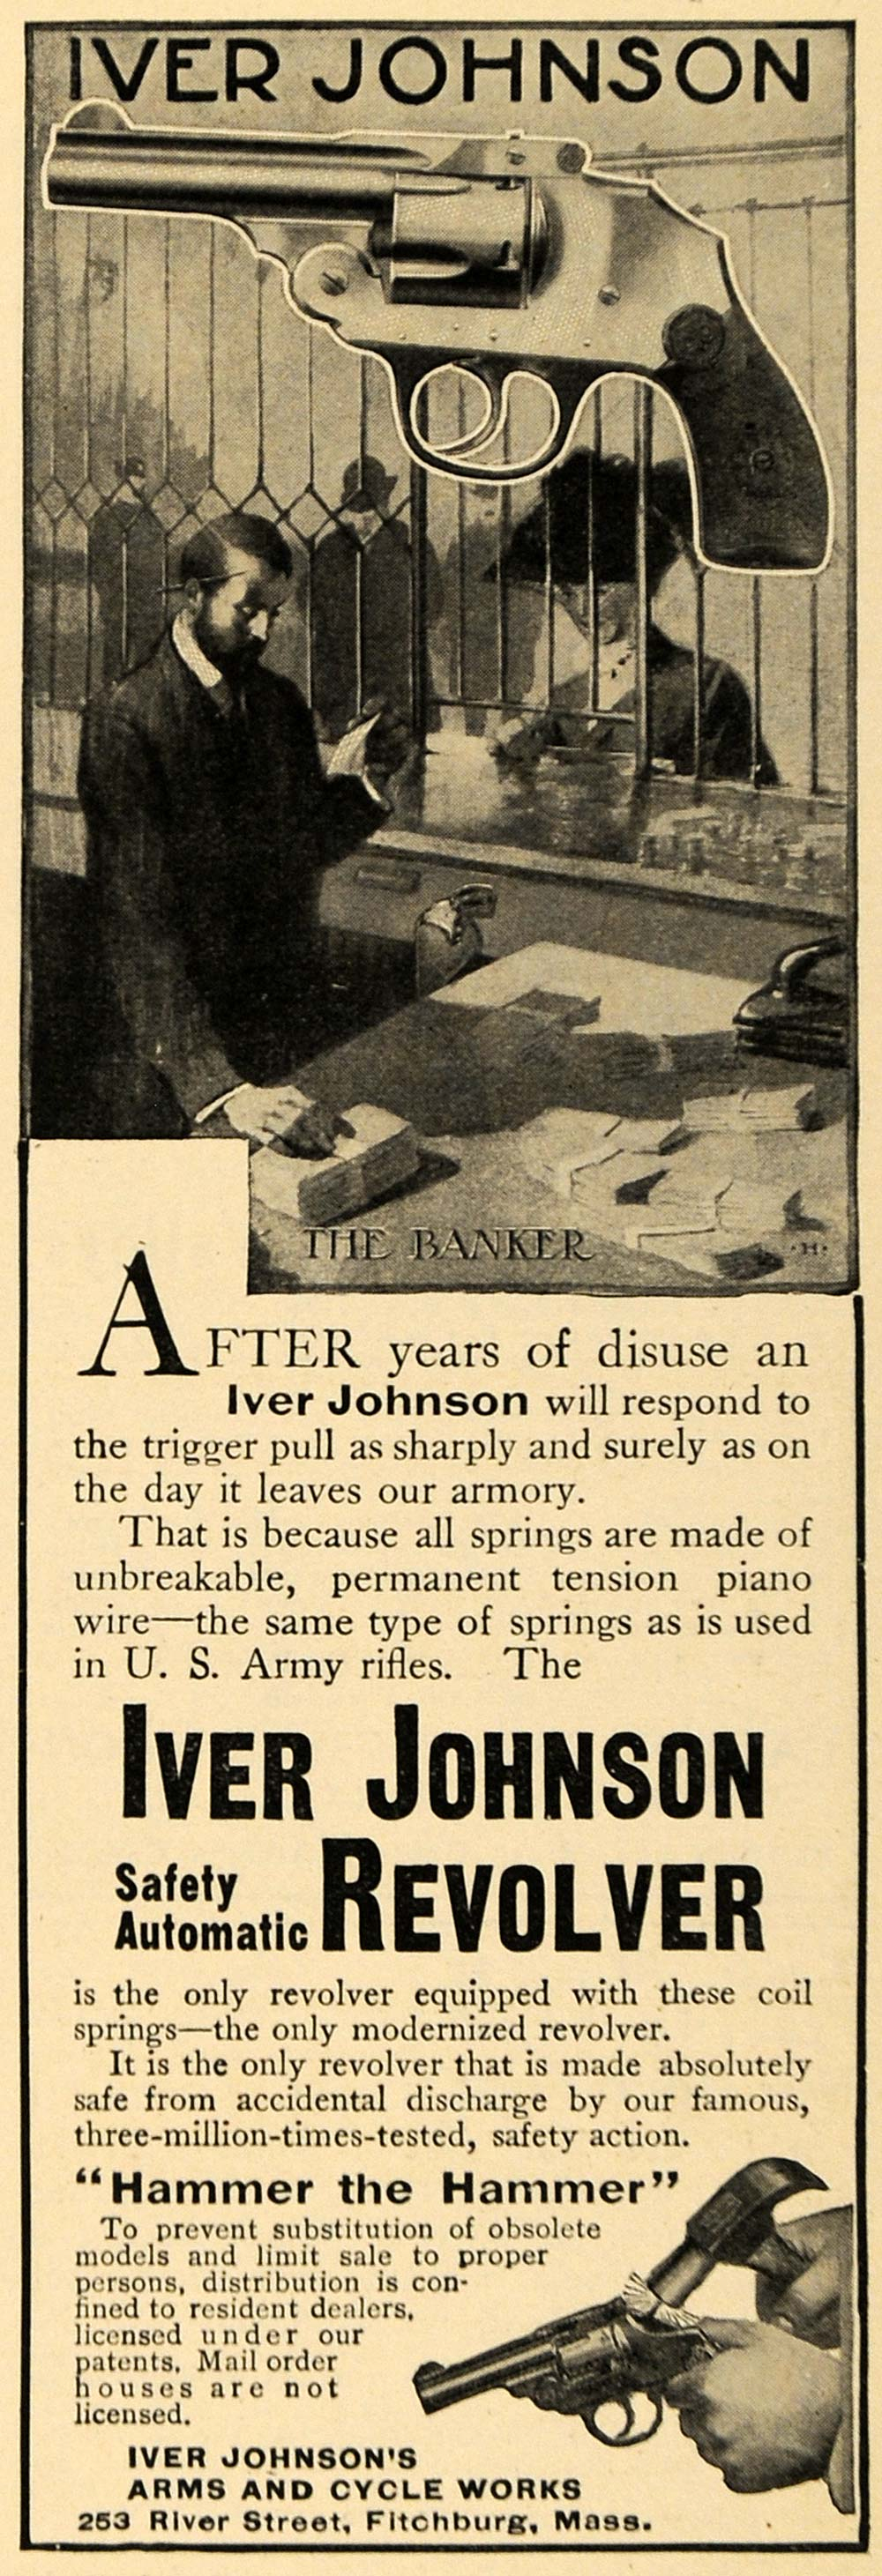 1911 Ad Banker Protection Iver Johnson Safety Revolver - ORIGINAL TW3